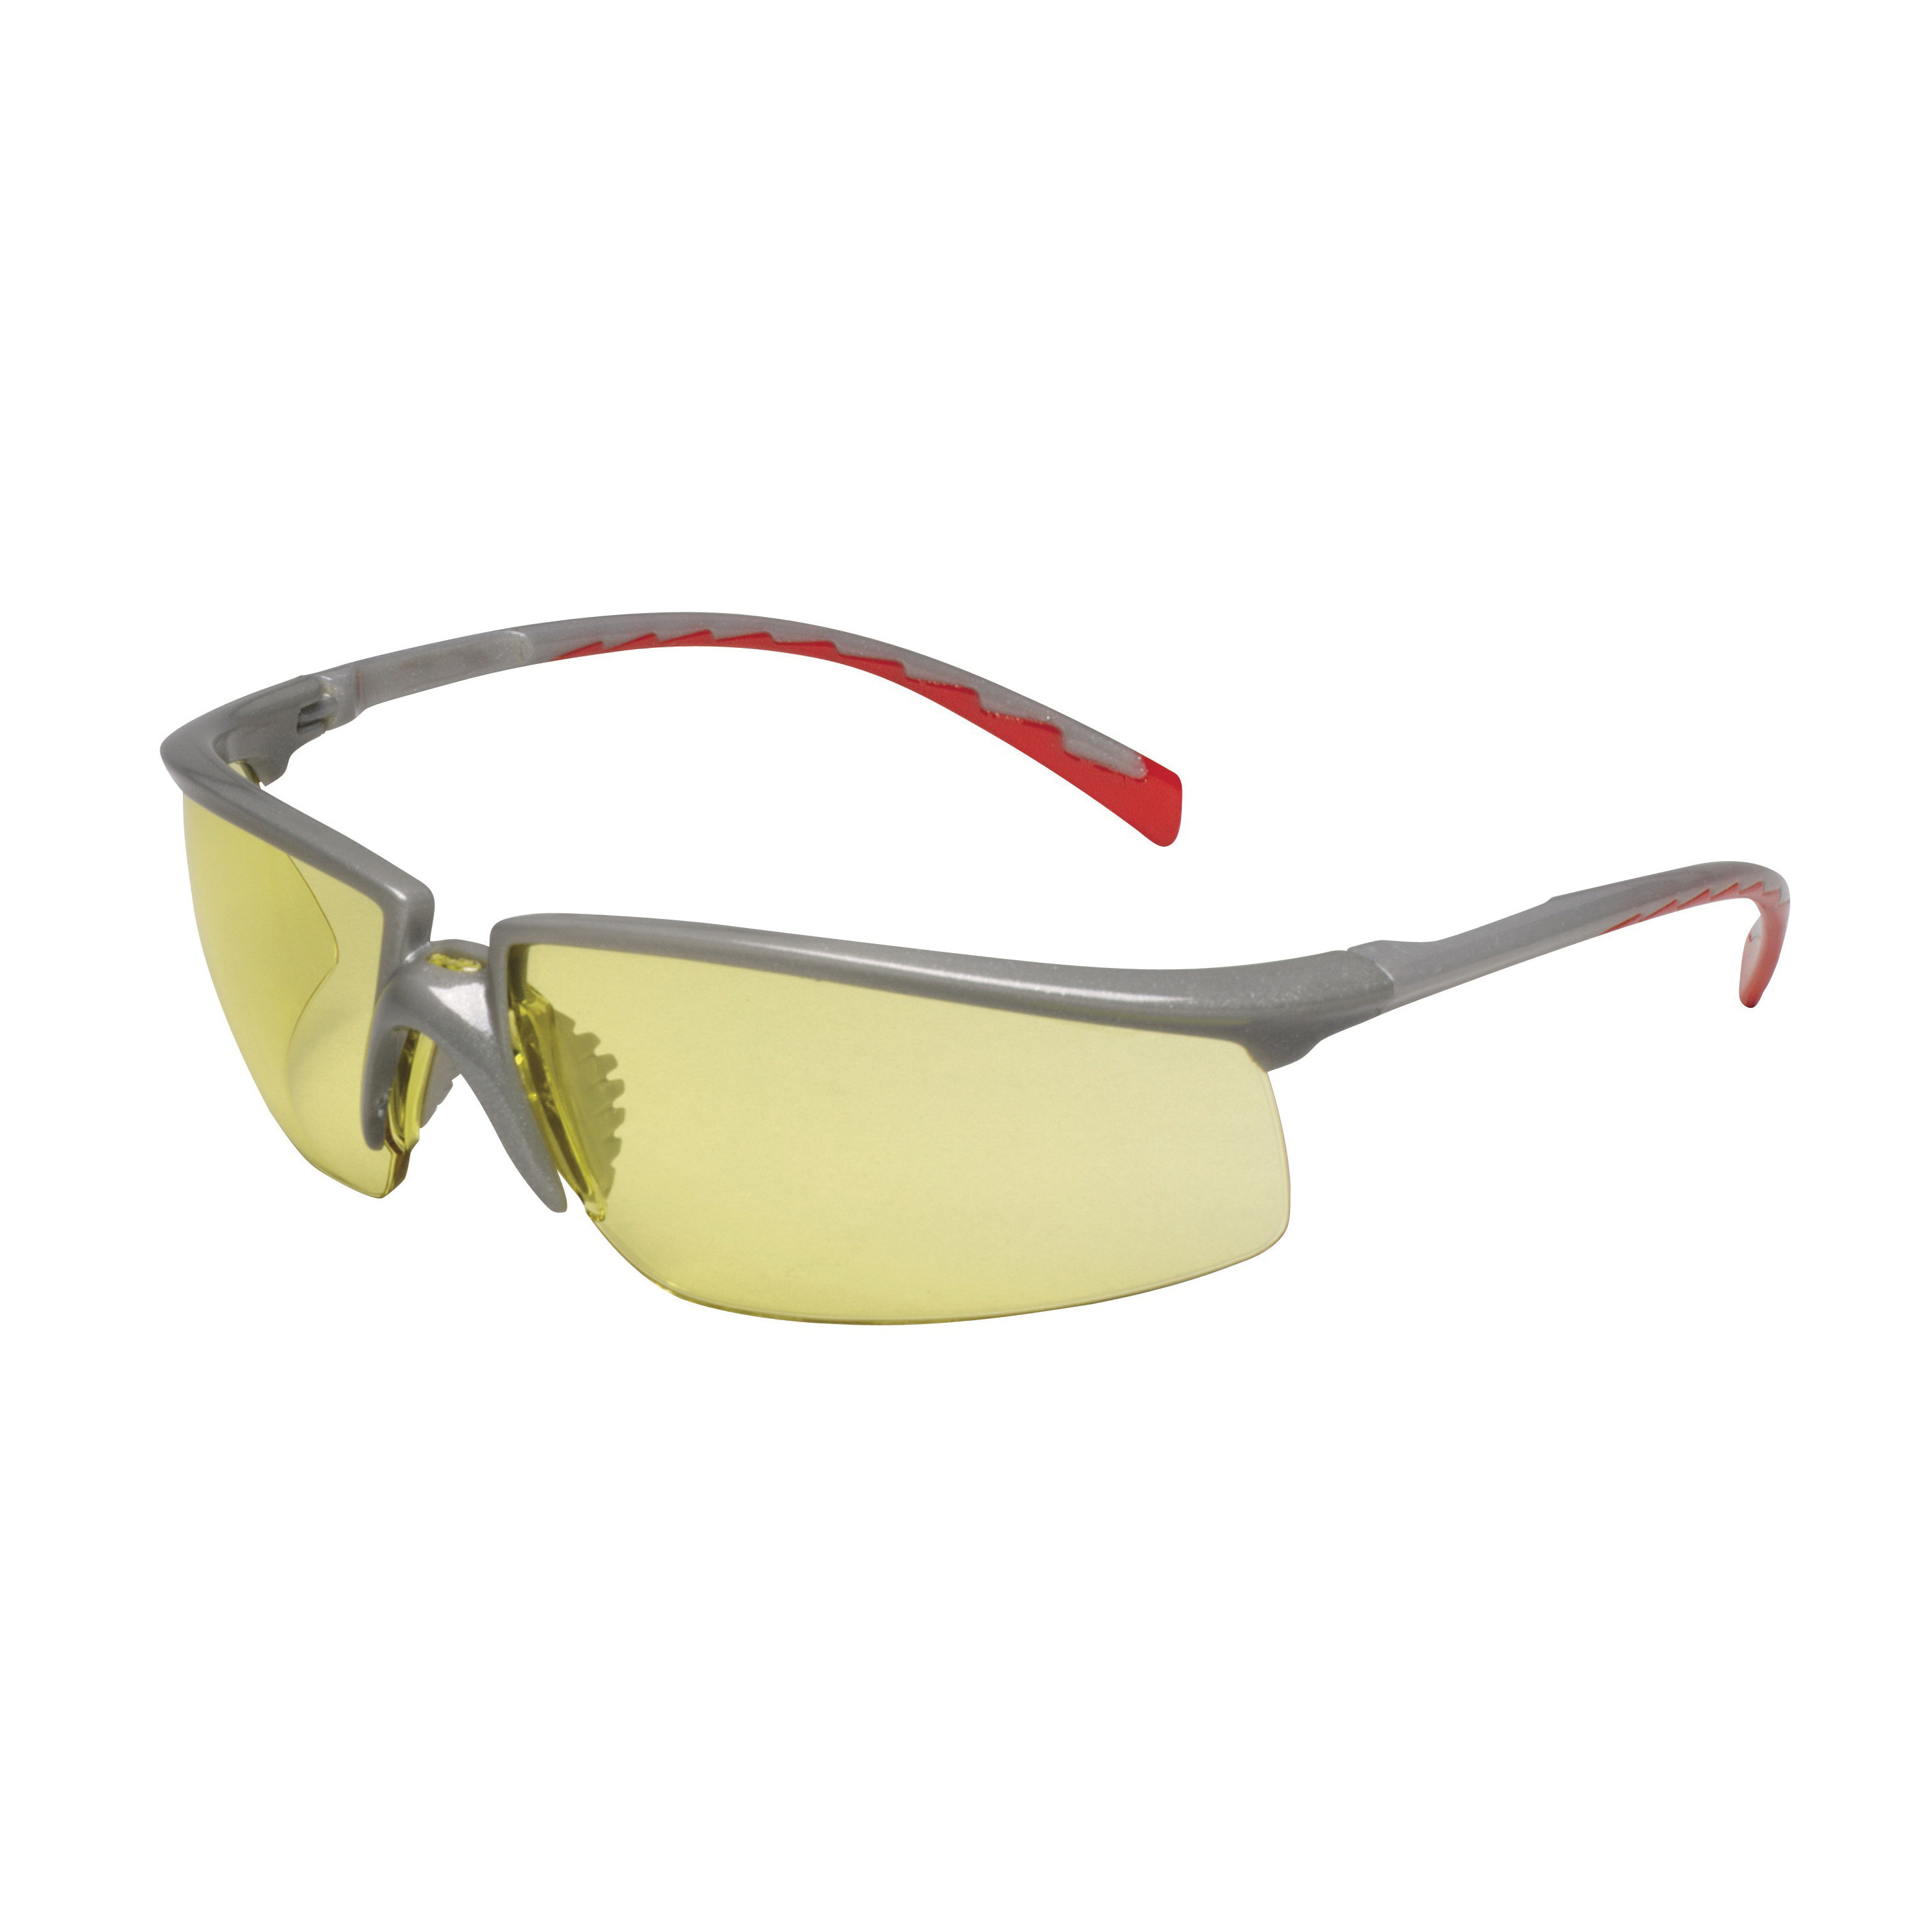 3M™ Privo™ 078371-62093 12267-00000-20 Value Range Safety Glasses, Anti-Fog Amber Lens, Half Framed Silver Plastic Frame, Polycarbonate Lens, Specifications Met: ANSI Z87.1-2003, CSA Z94.3-2007